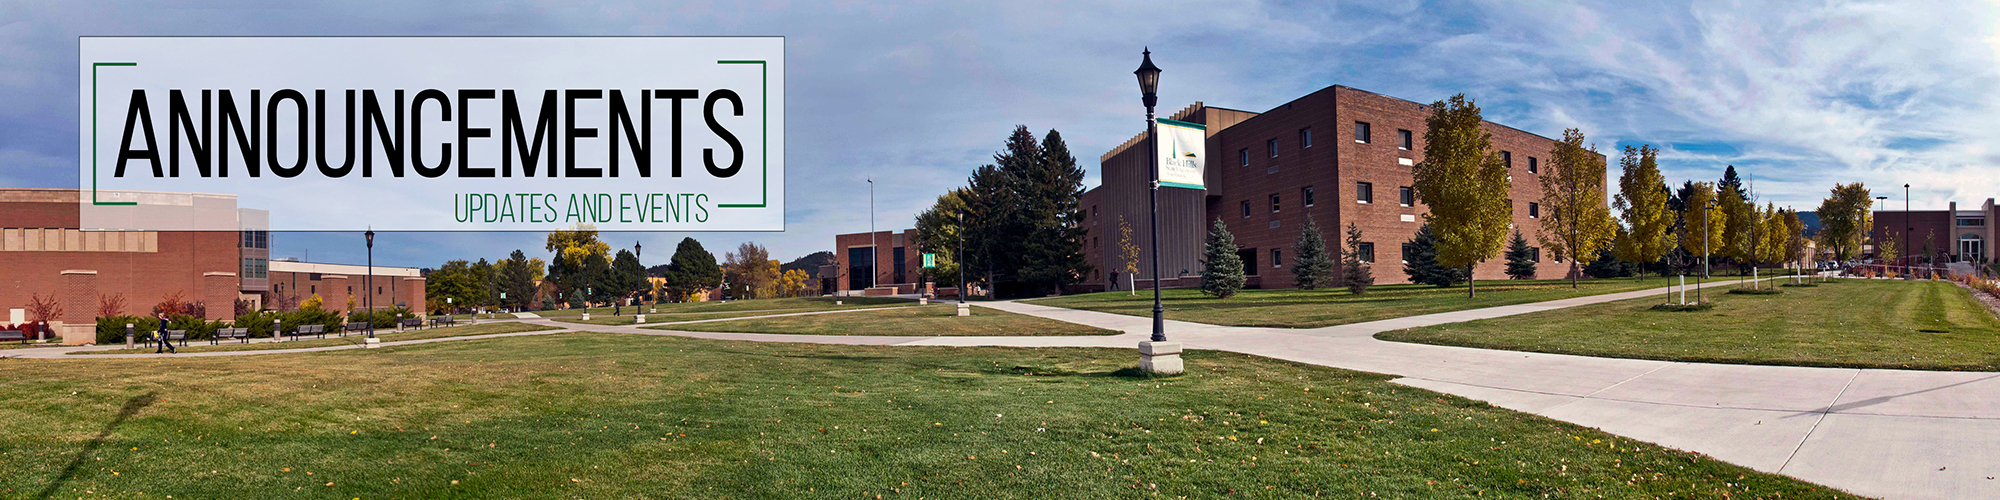 Updates and Events Announcement at BHSU